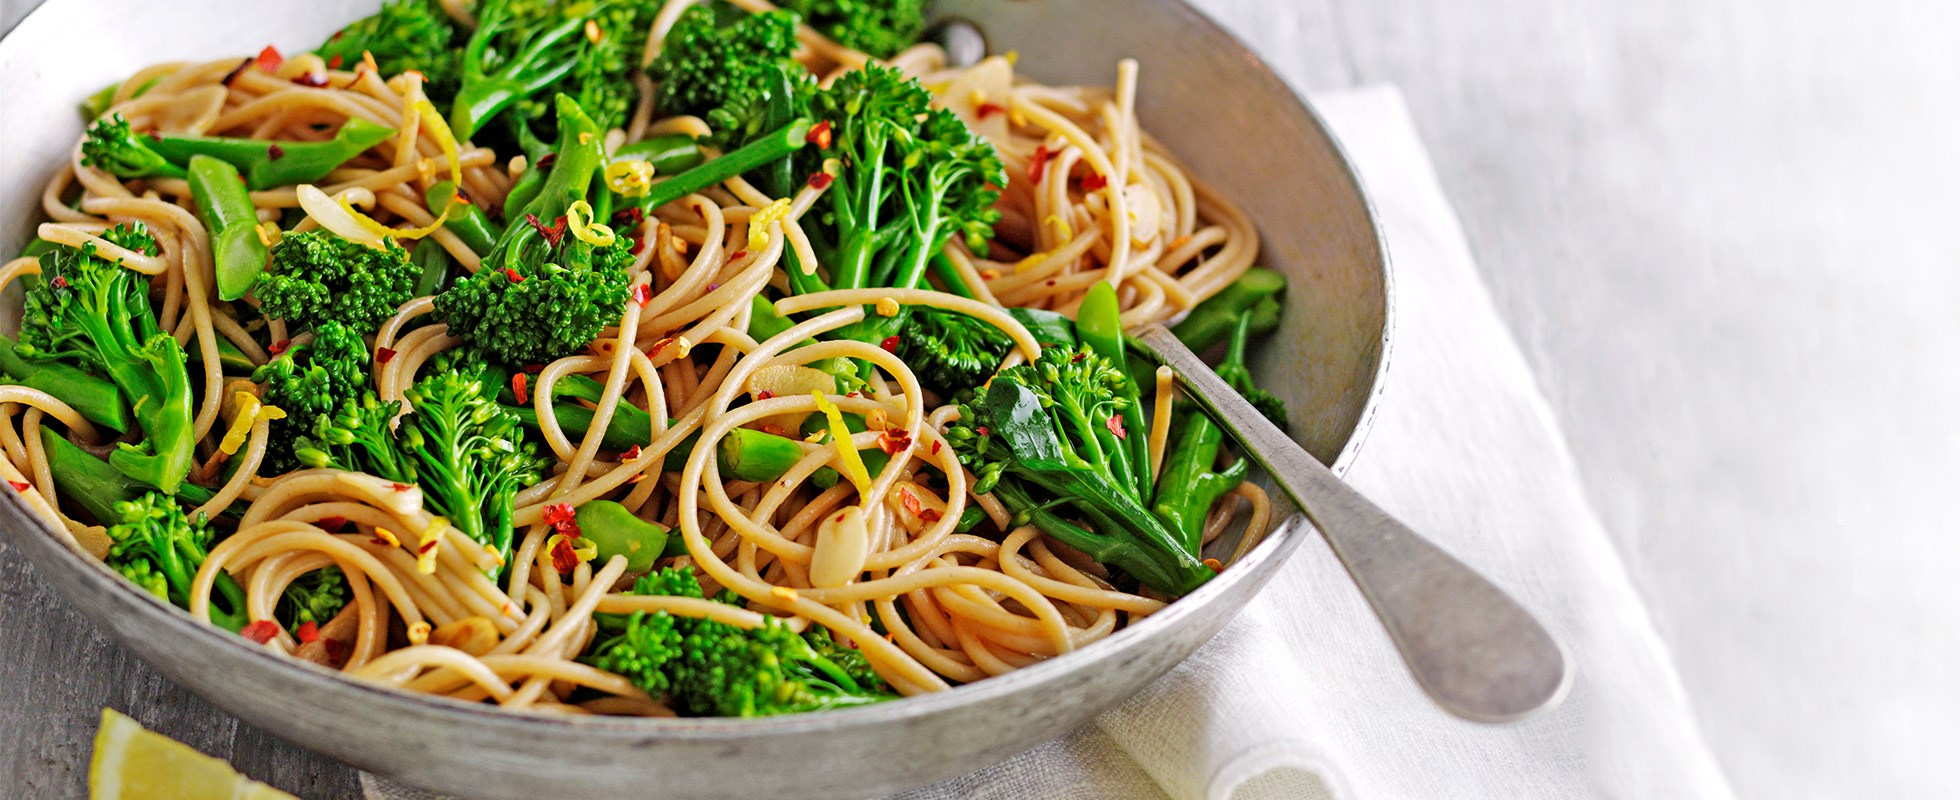 Wholewheat spaghetti with long-stemmed broccoli